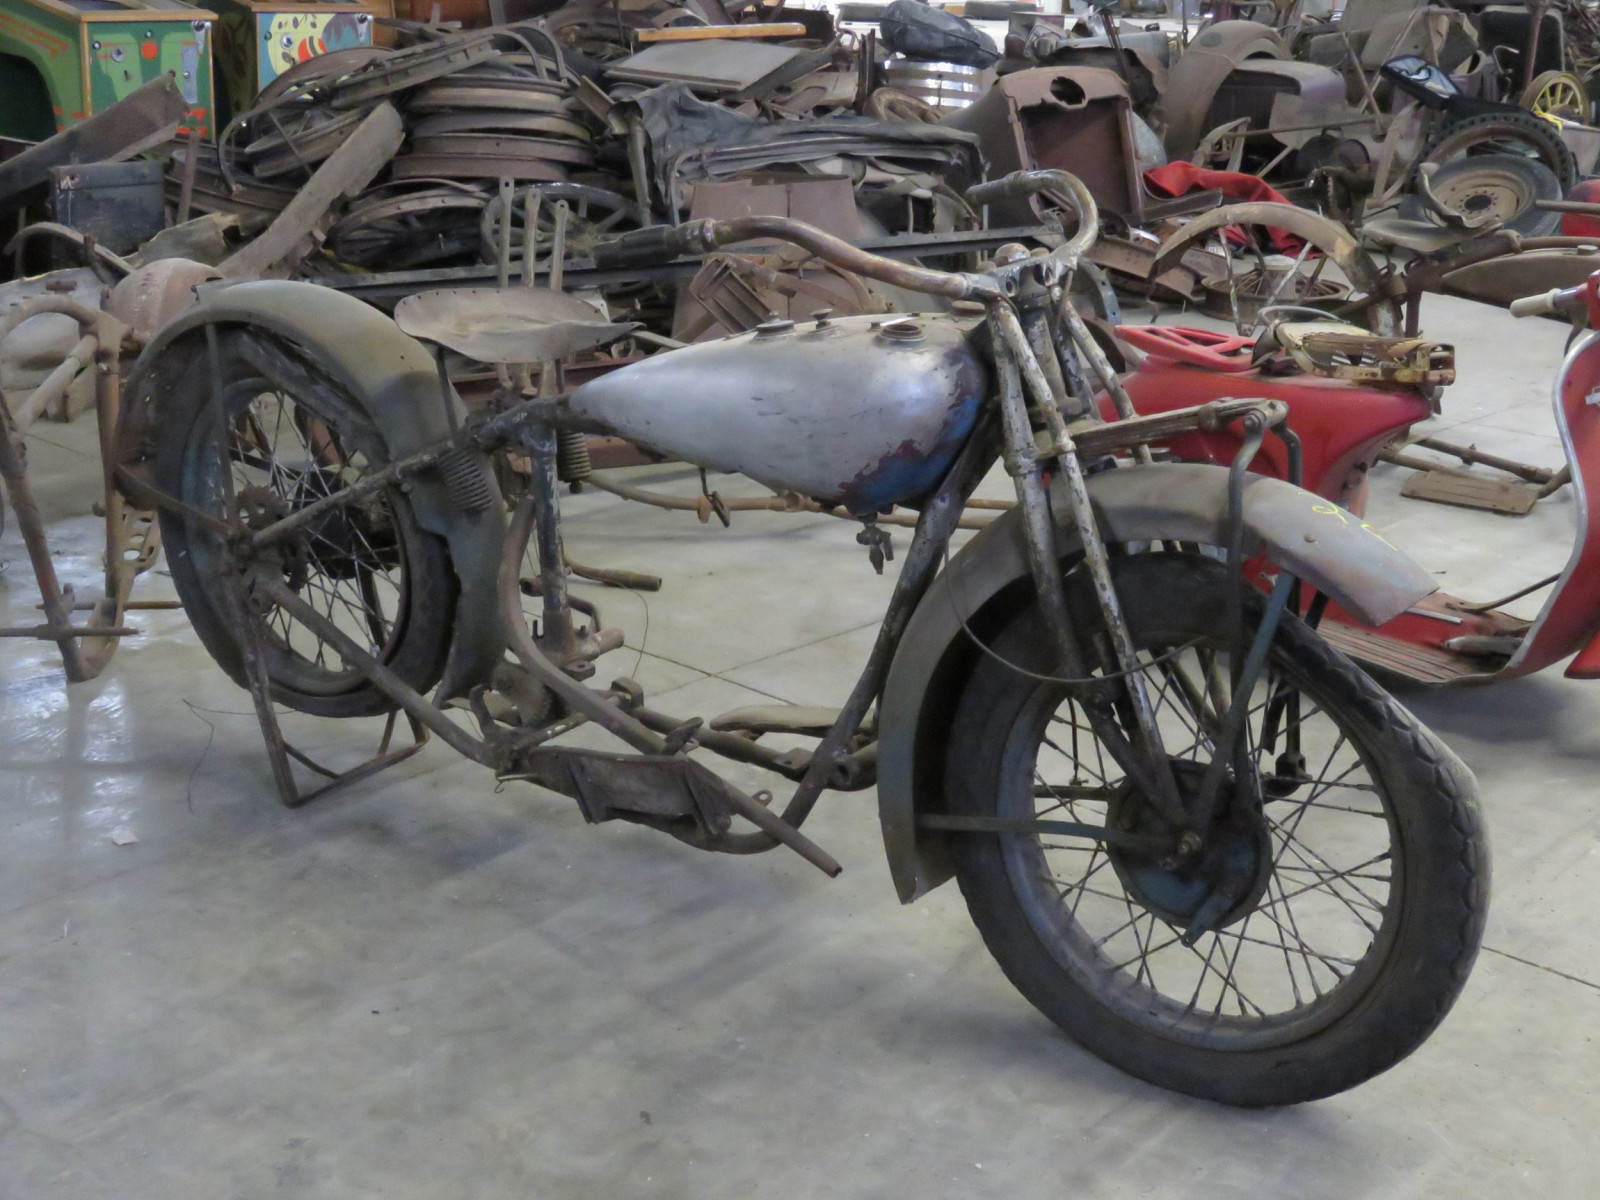 RARE 1929 Indian V-Twin Motorcycle - Image 5